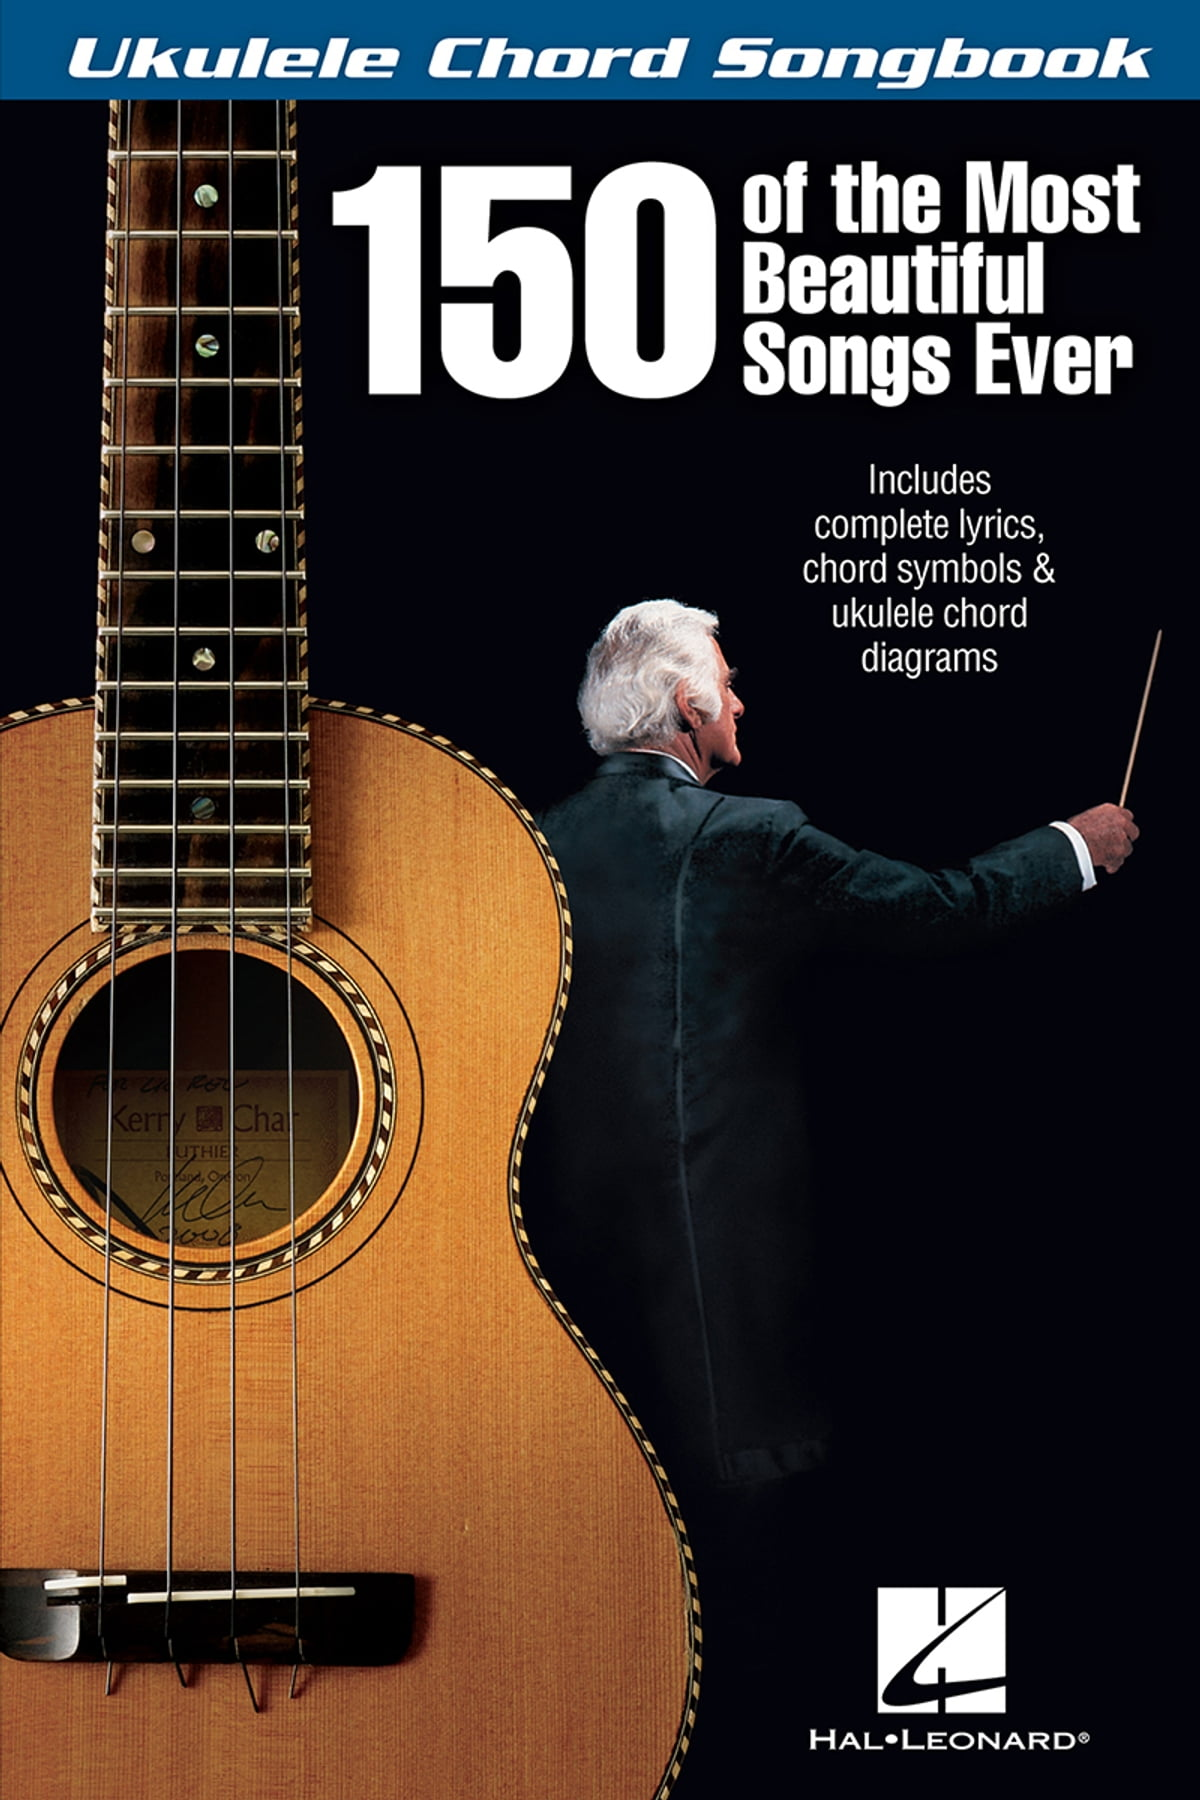 150 of the Most Beautiful Songs Ever - Ukulele Chord Songbook eBook by Hal  Leonard Corp. - 9781480363632 | Rakuten Kobo